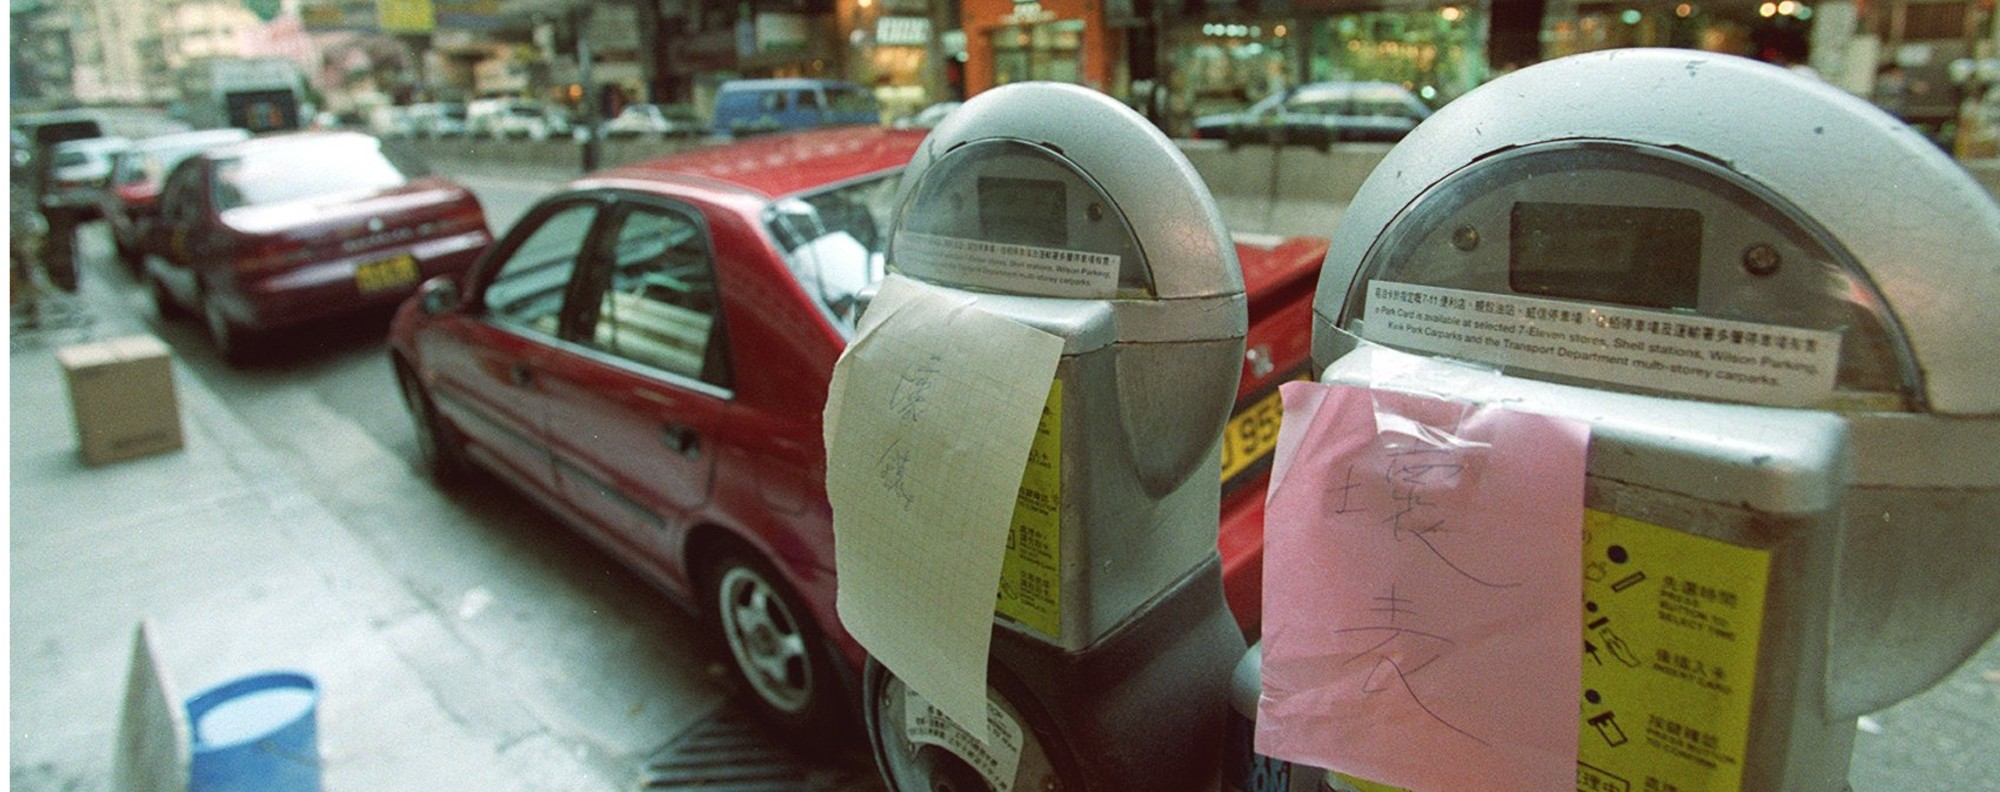 Borken Hong Kong parking meters on Lockhart road. Photo: David Wong